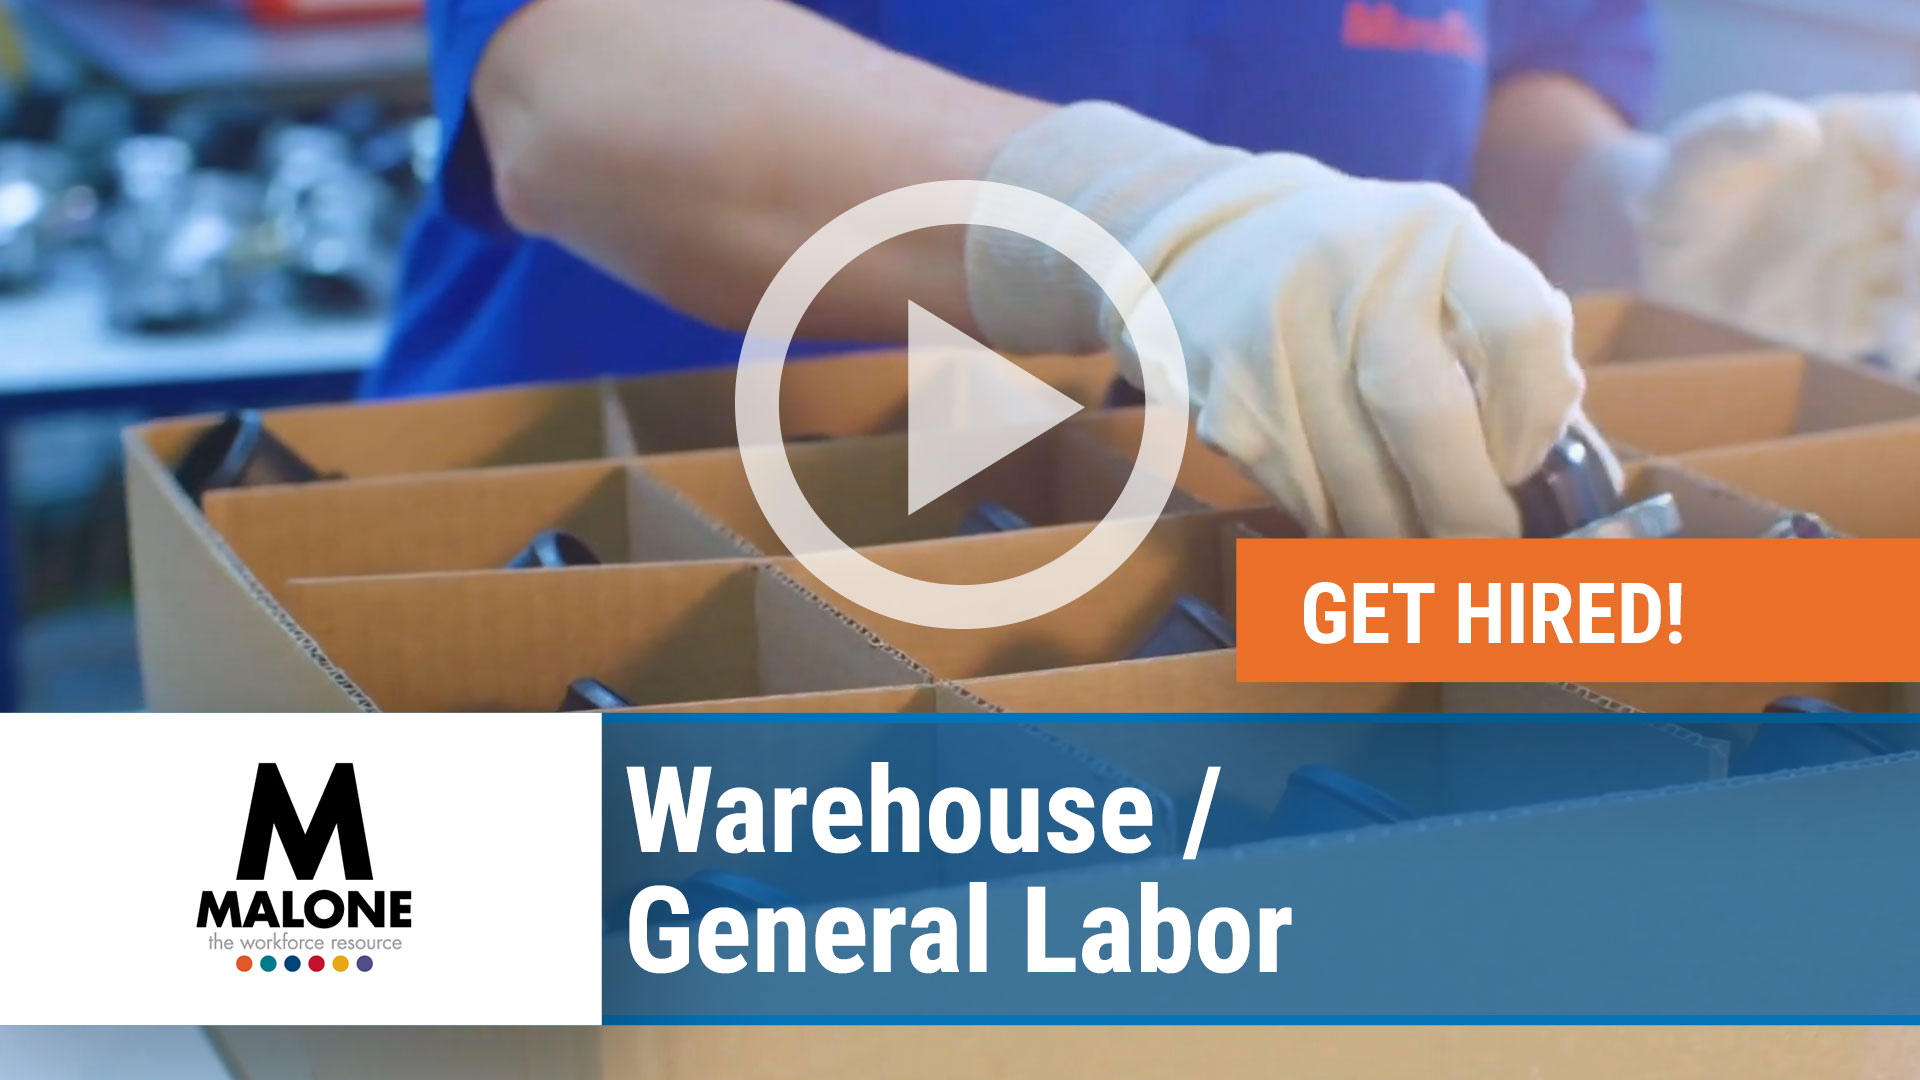 Watch our careers video for available job opening Warehouse - General Labor in Henderson, Kentucky